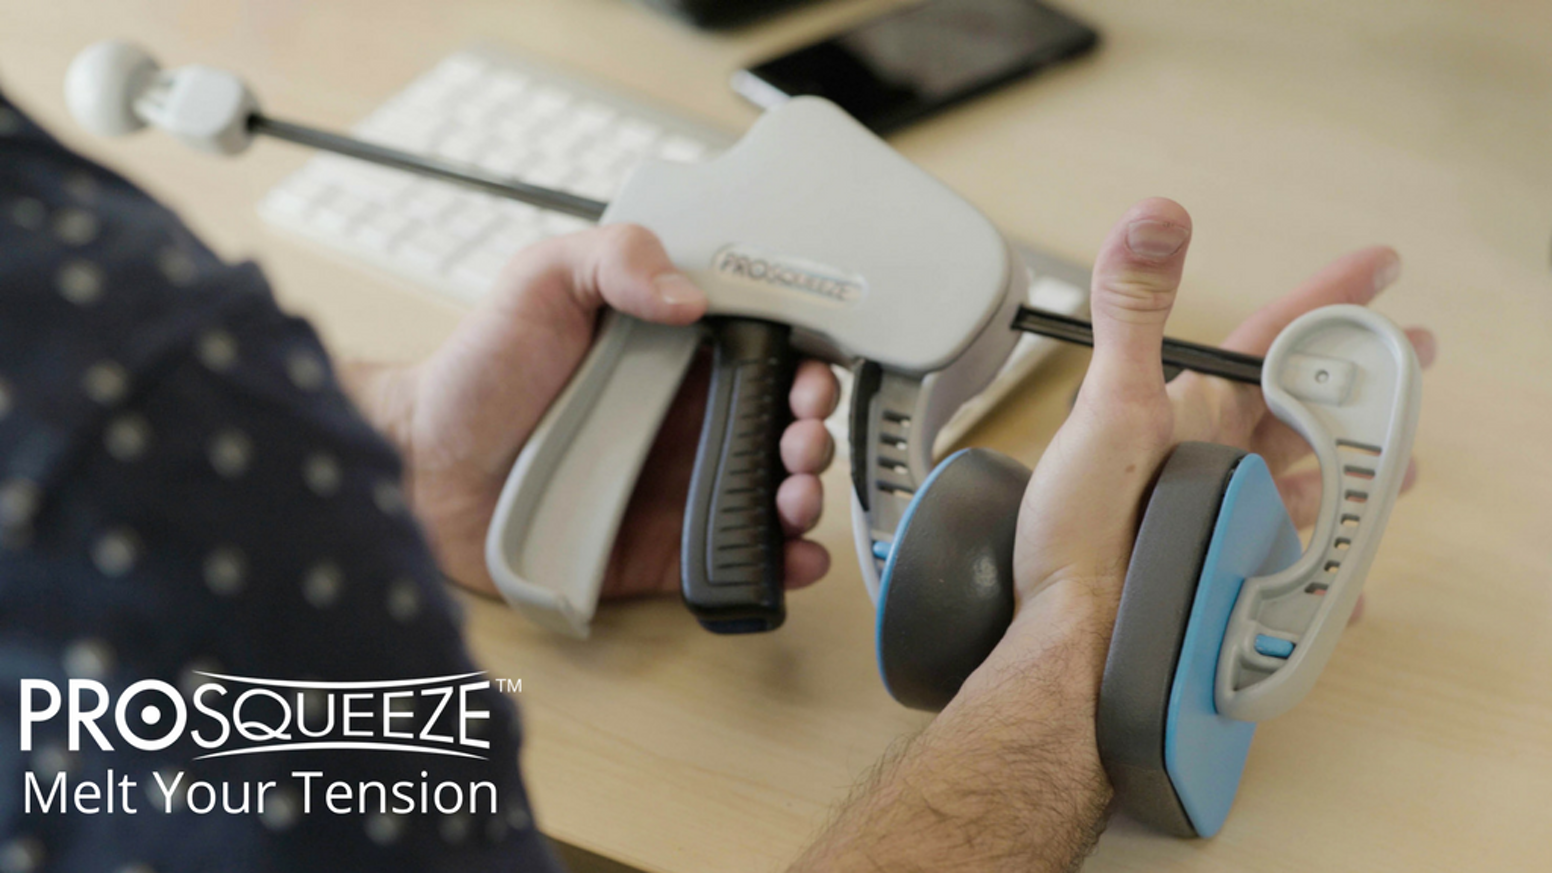 ProSqueeze is an innovative new self-massage tool designed for anyone who doesn't have the time or money to get a massage regularly.